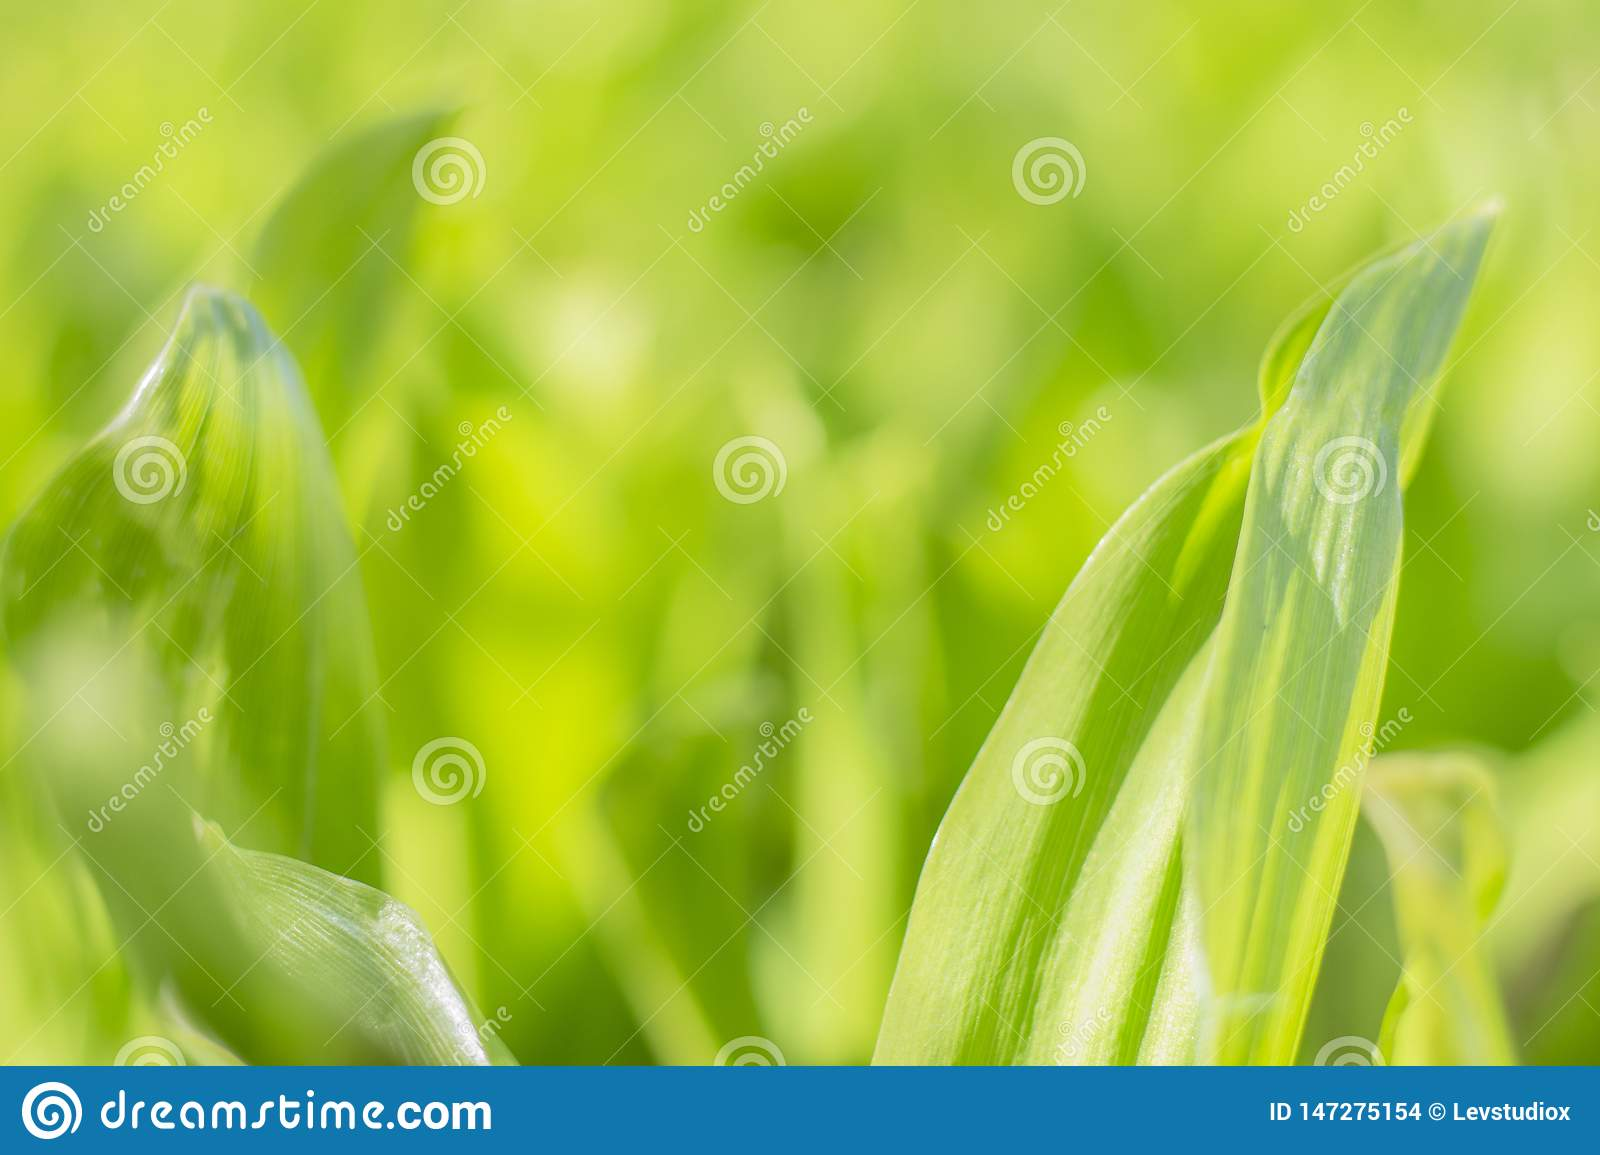 Background texture green leaves grass with a blurred background